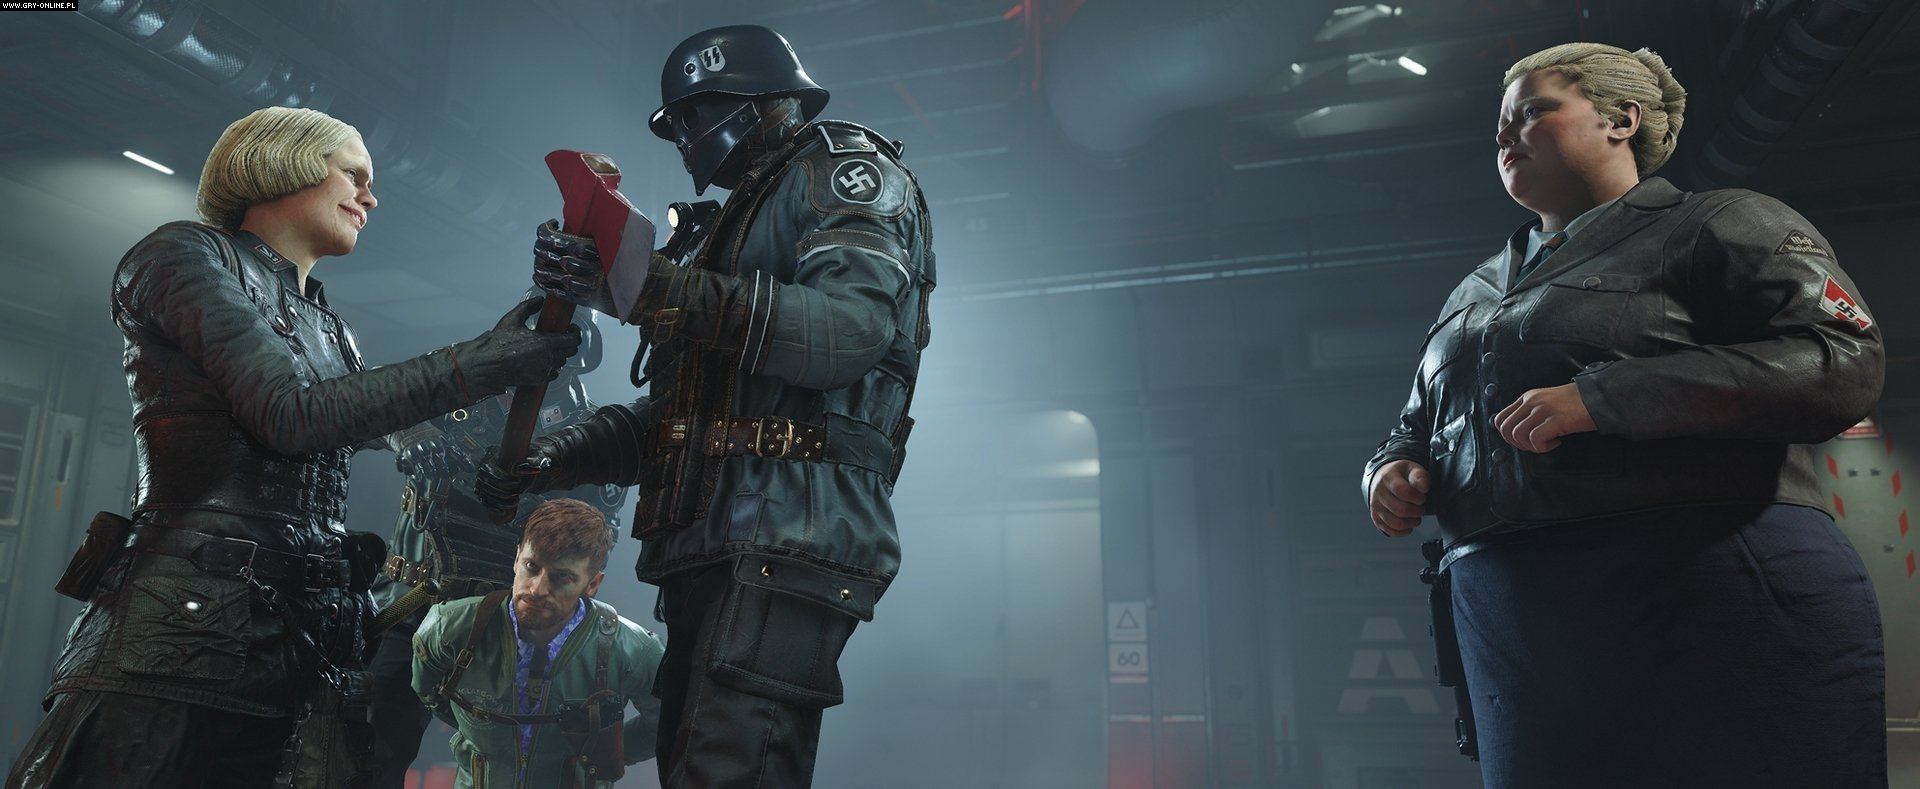 Wolfenstein II: The New Colossus PC, XONE, PS4 Games Image 7/8, Machine Games, Bethesda Softworks